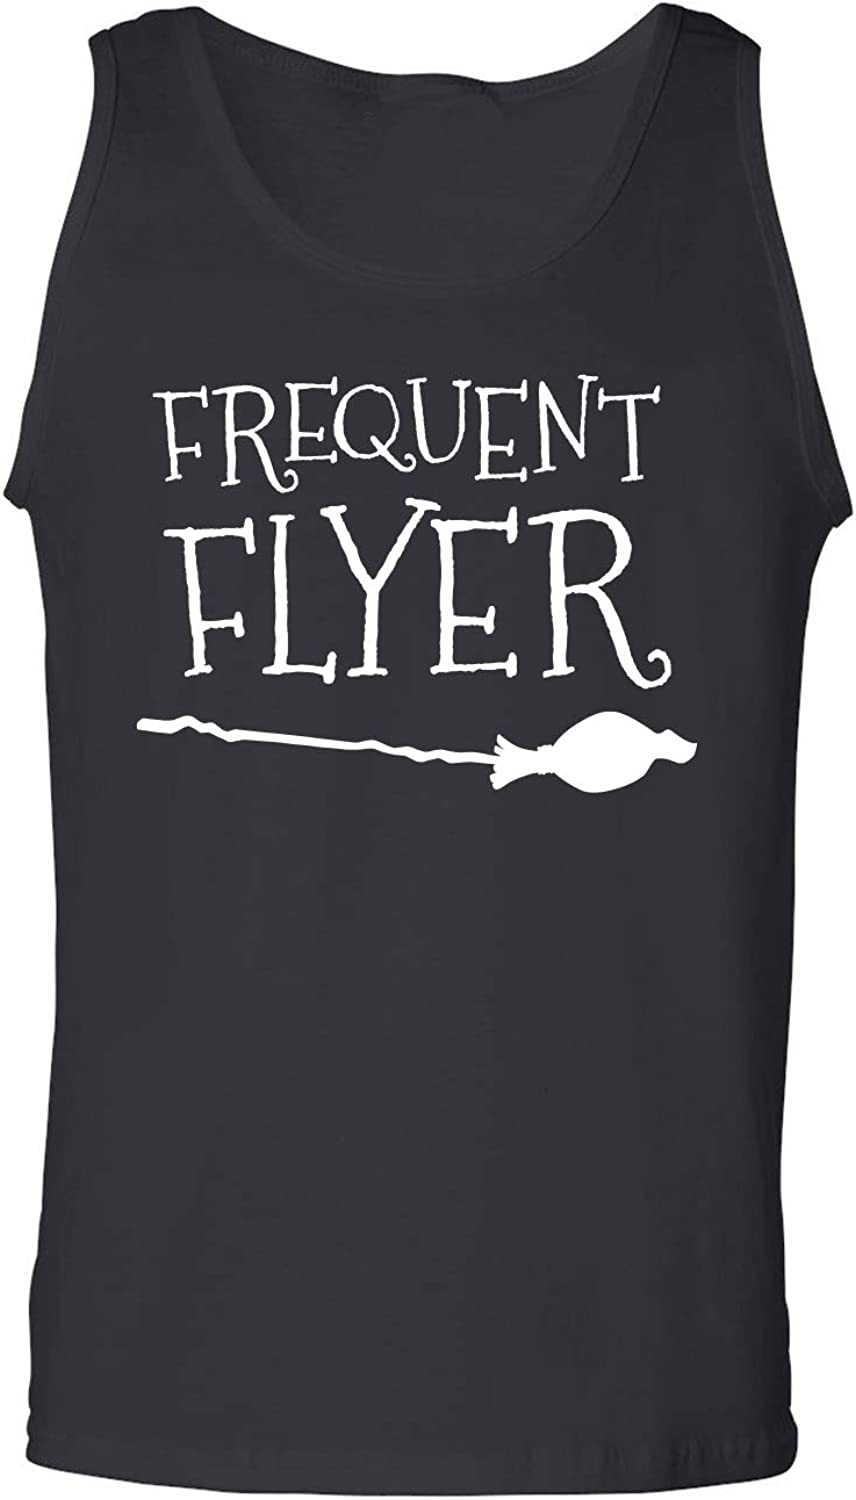 Frequent Flyer Adult Tank Top in Black - XXX-Large